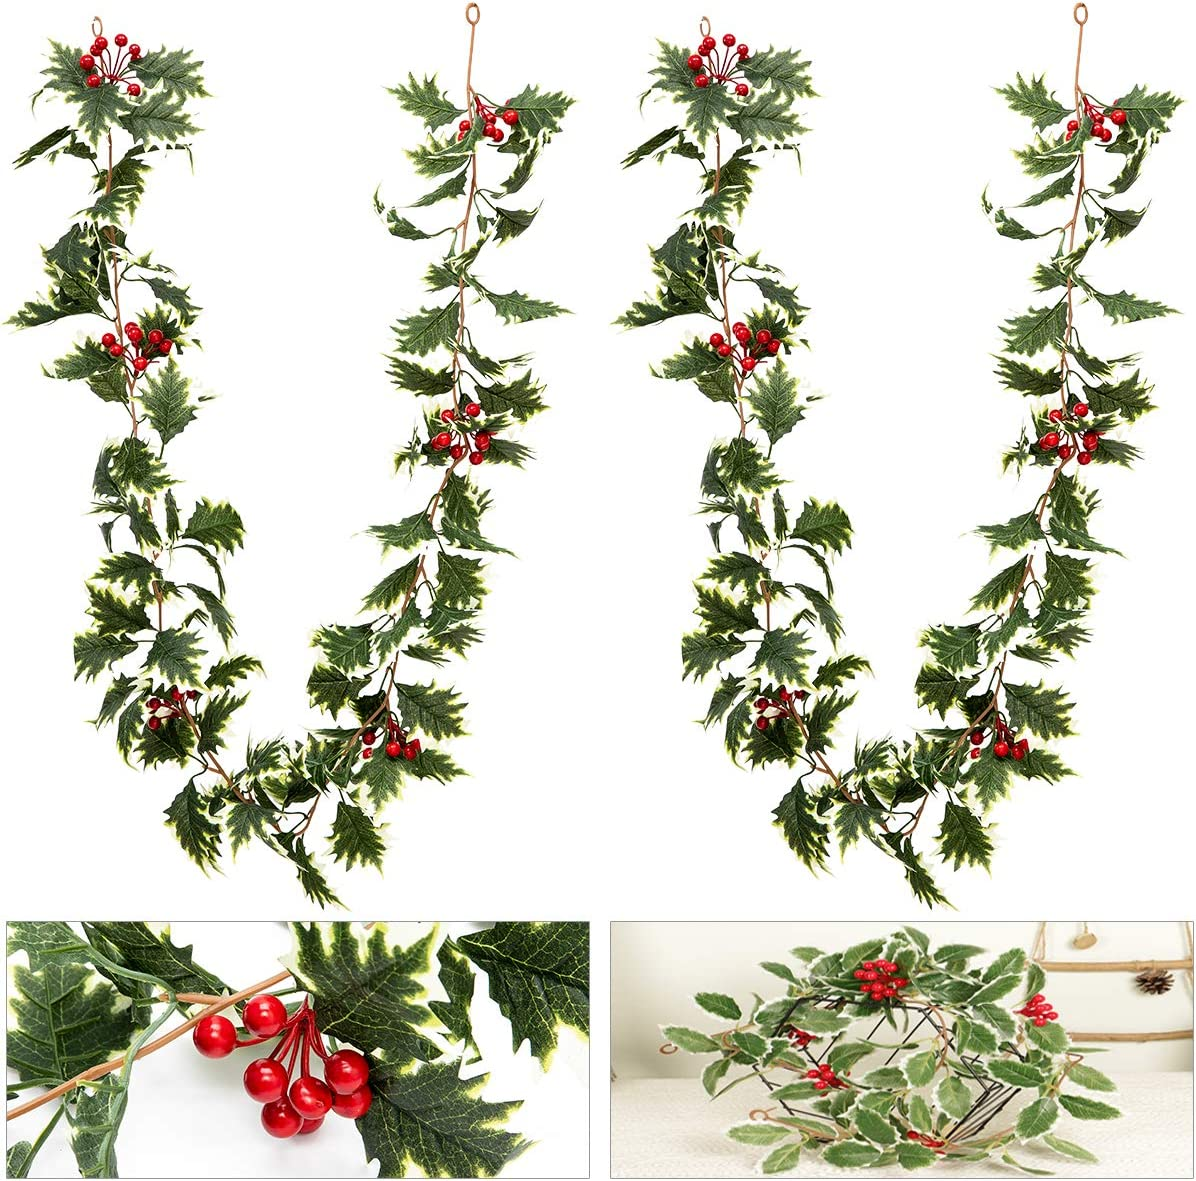 ANPHSIN 2 Pcs 5.6 ft Christmas Red Berry Garland with White-Edged Leaves- Artificial Xmas Red Berry Garland for Home Winter Indoor Outdoor Garden Gate Decoration New Year Holiday Fireplace Decor